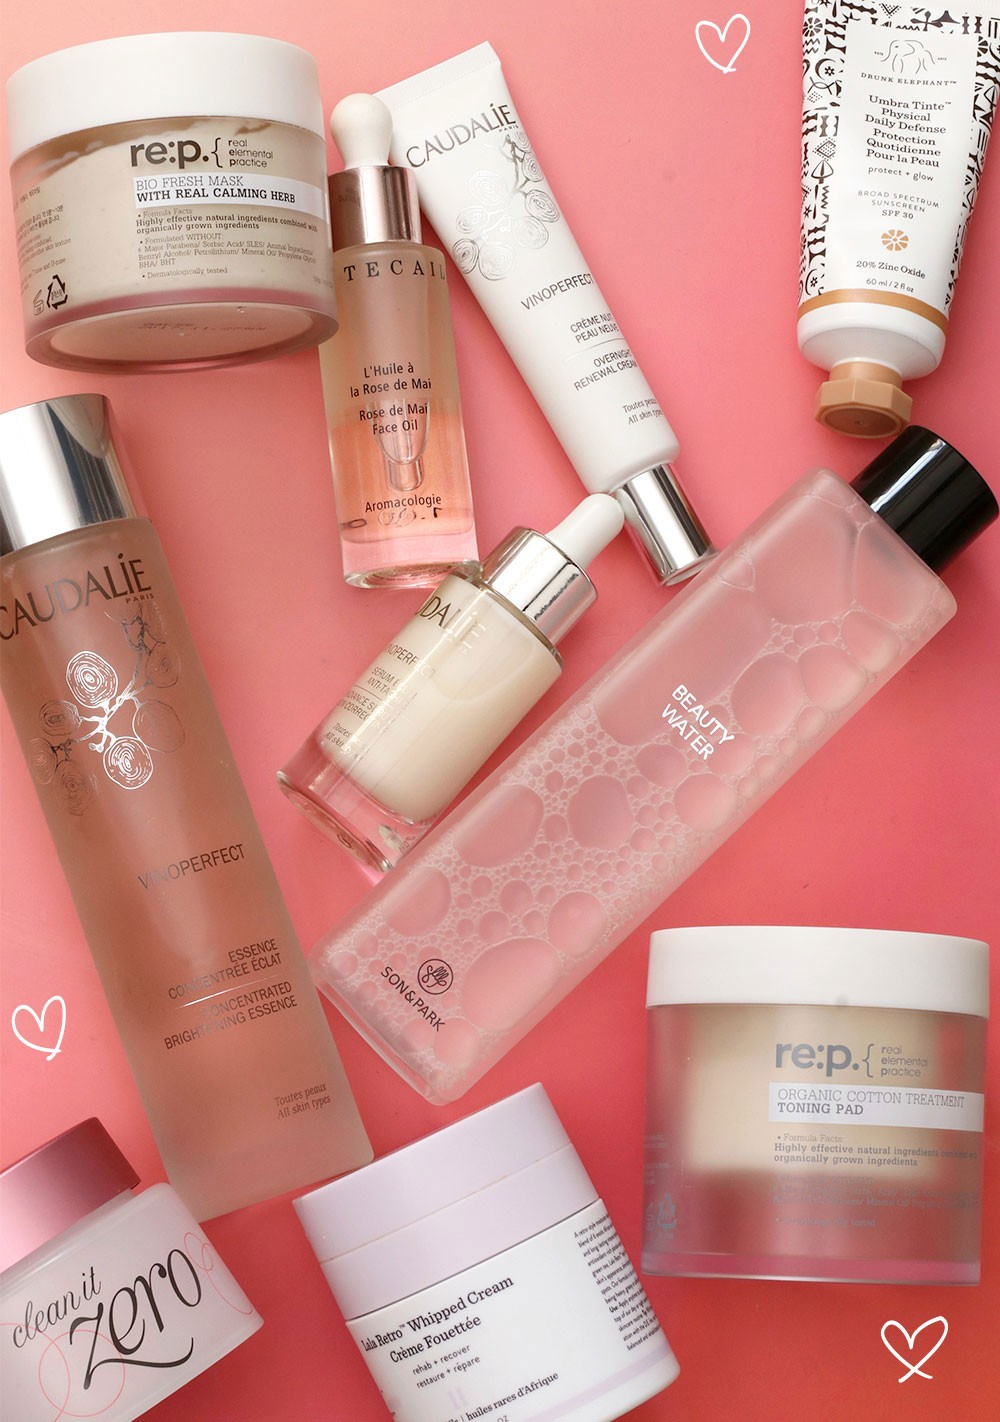 The Summer of Skin Care: Getting Serious About Skin